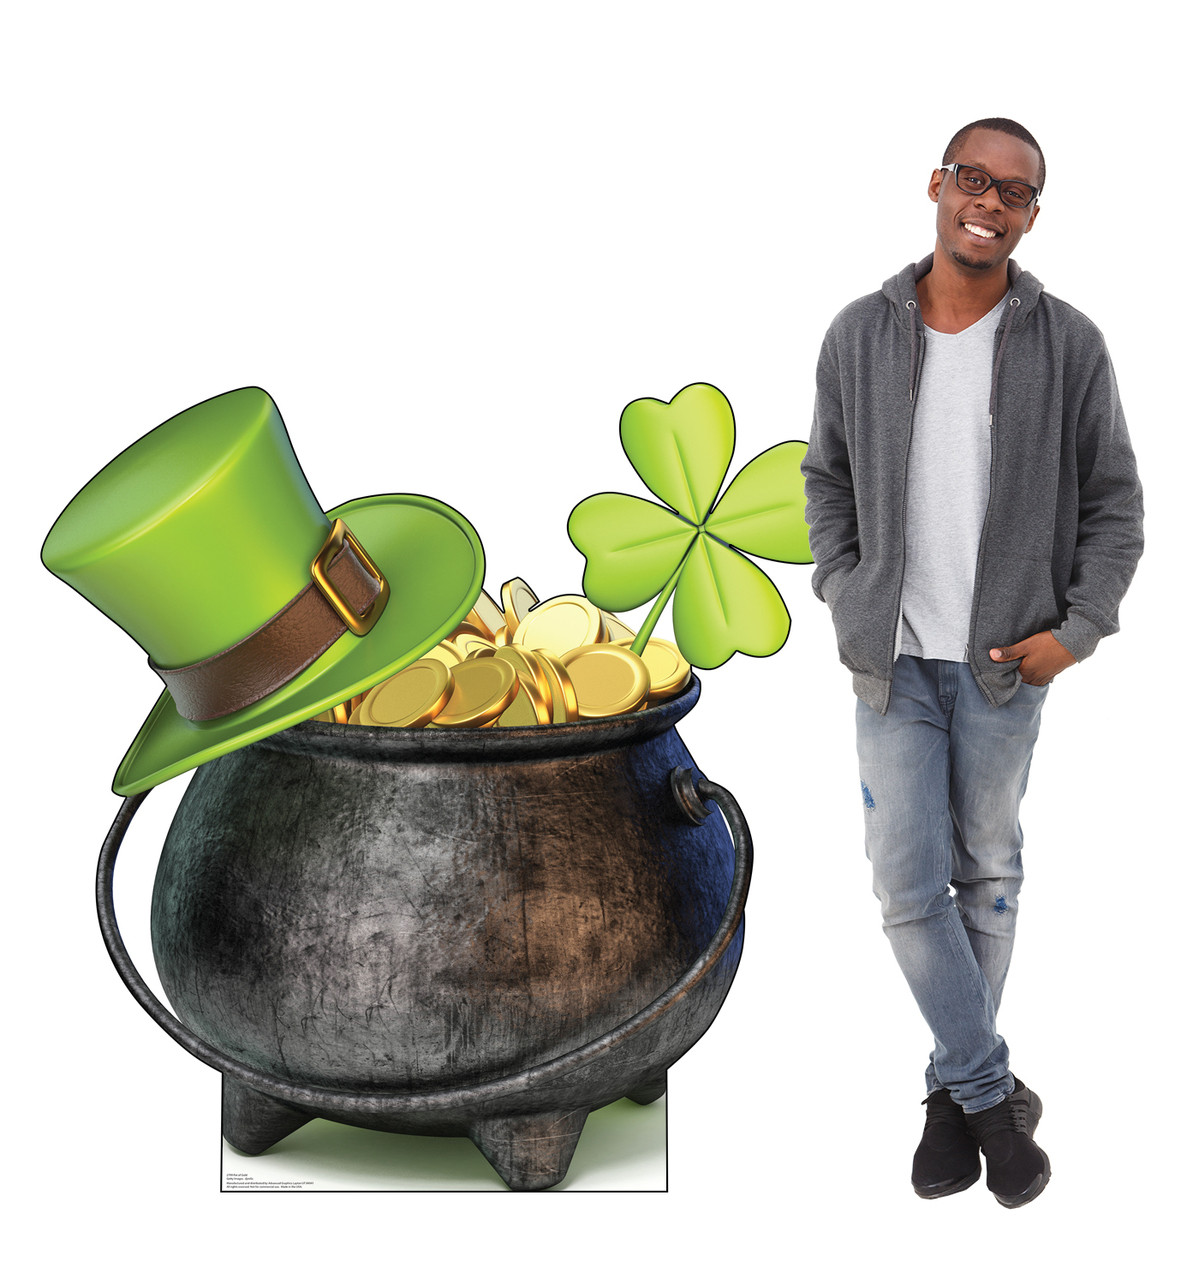 Life-size cardboard standee of a Pot of Gold with model.